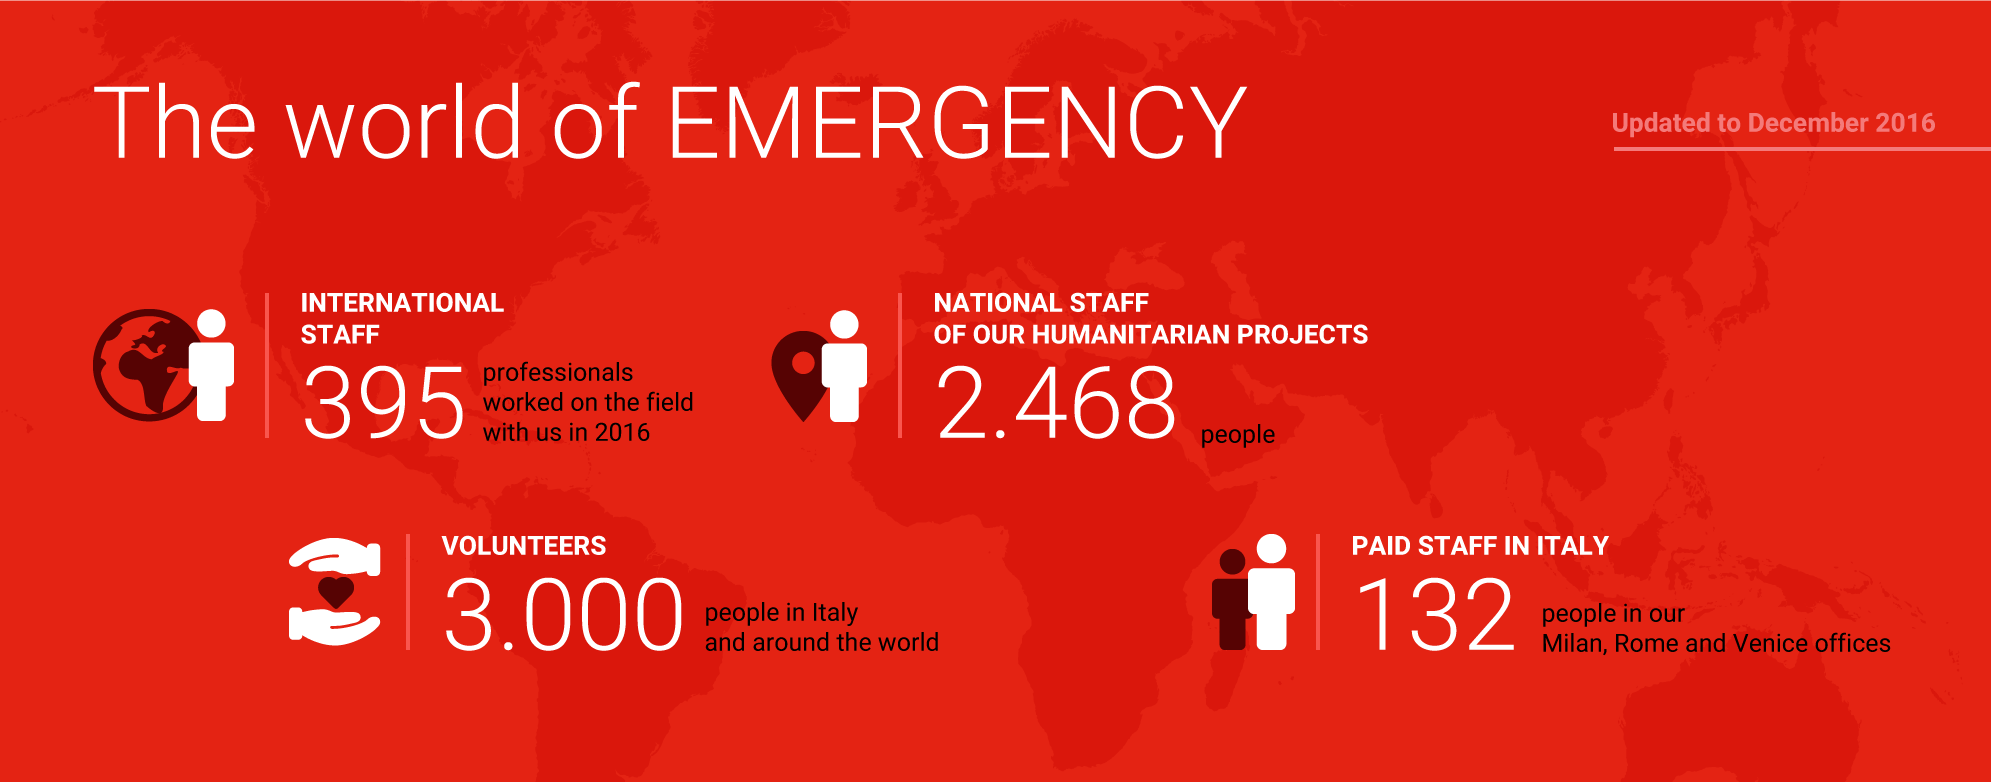 395 International staff, 2,468 National staff, 3,000 volunteers, 132 Paid staff in Italy (updated to December 2016)